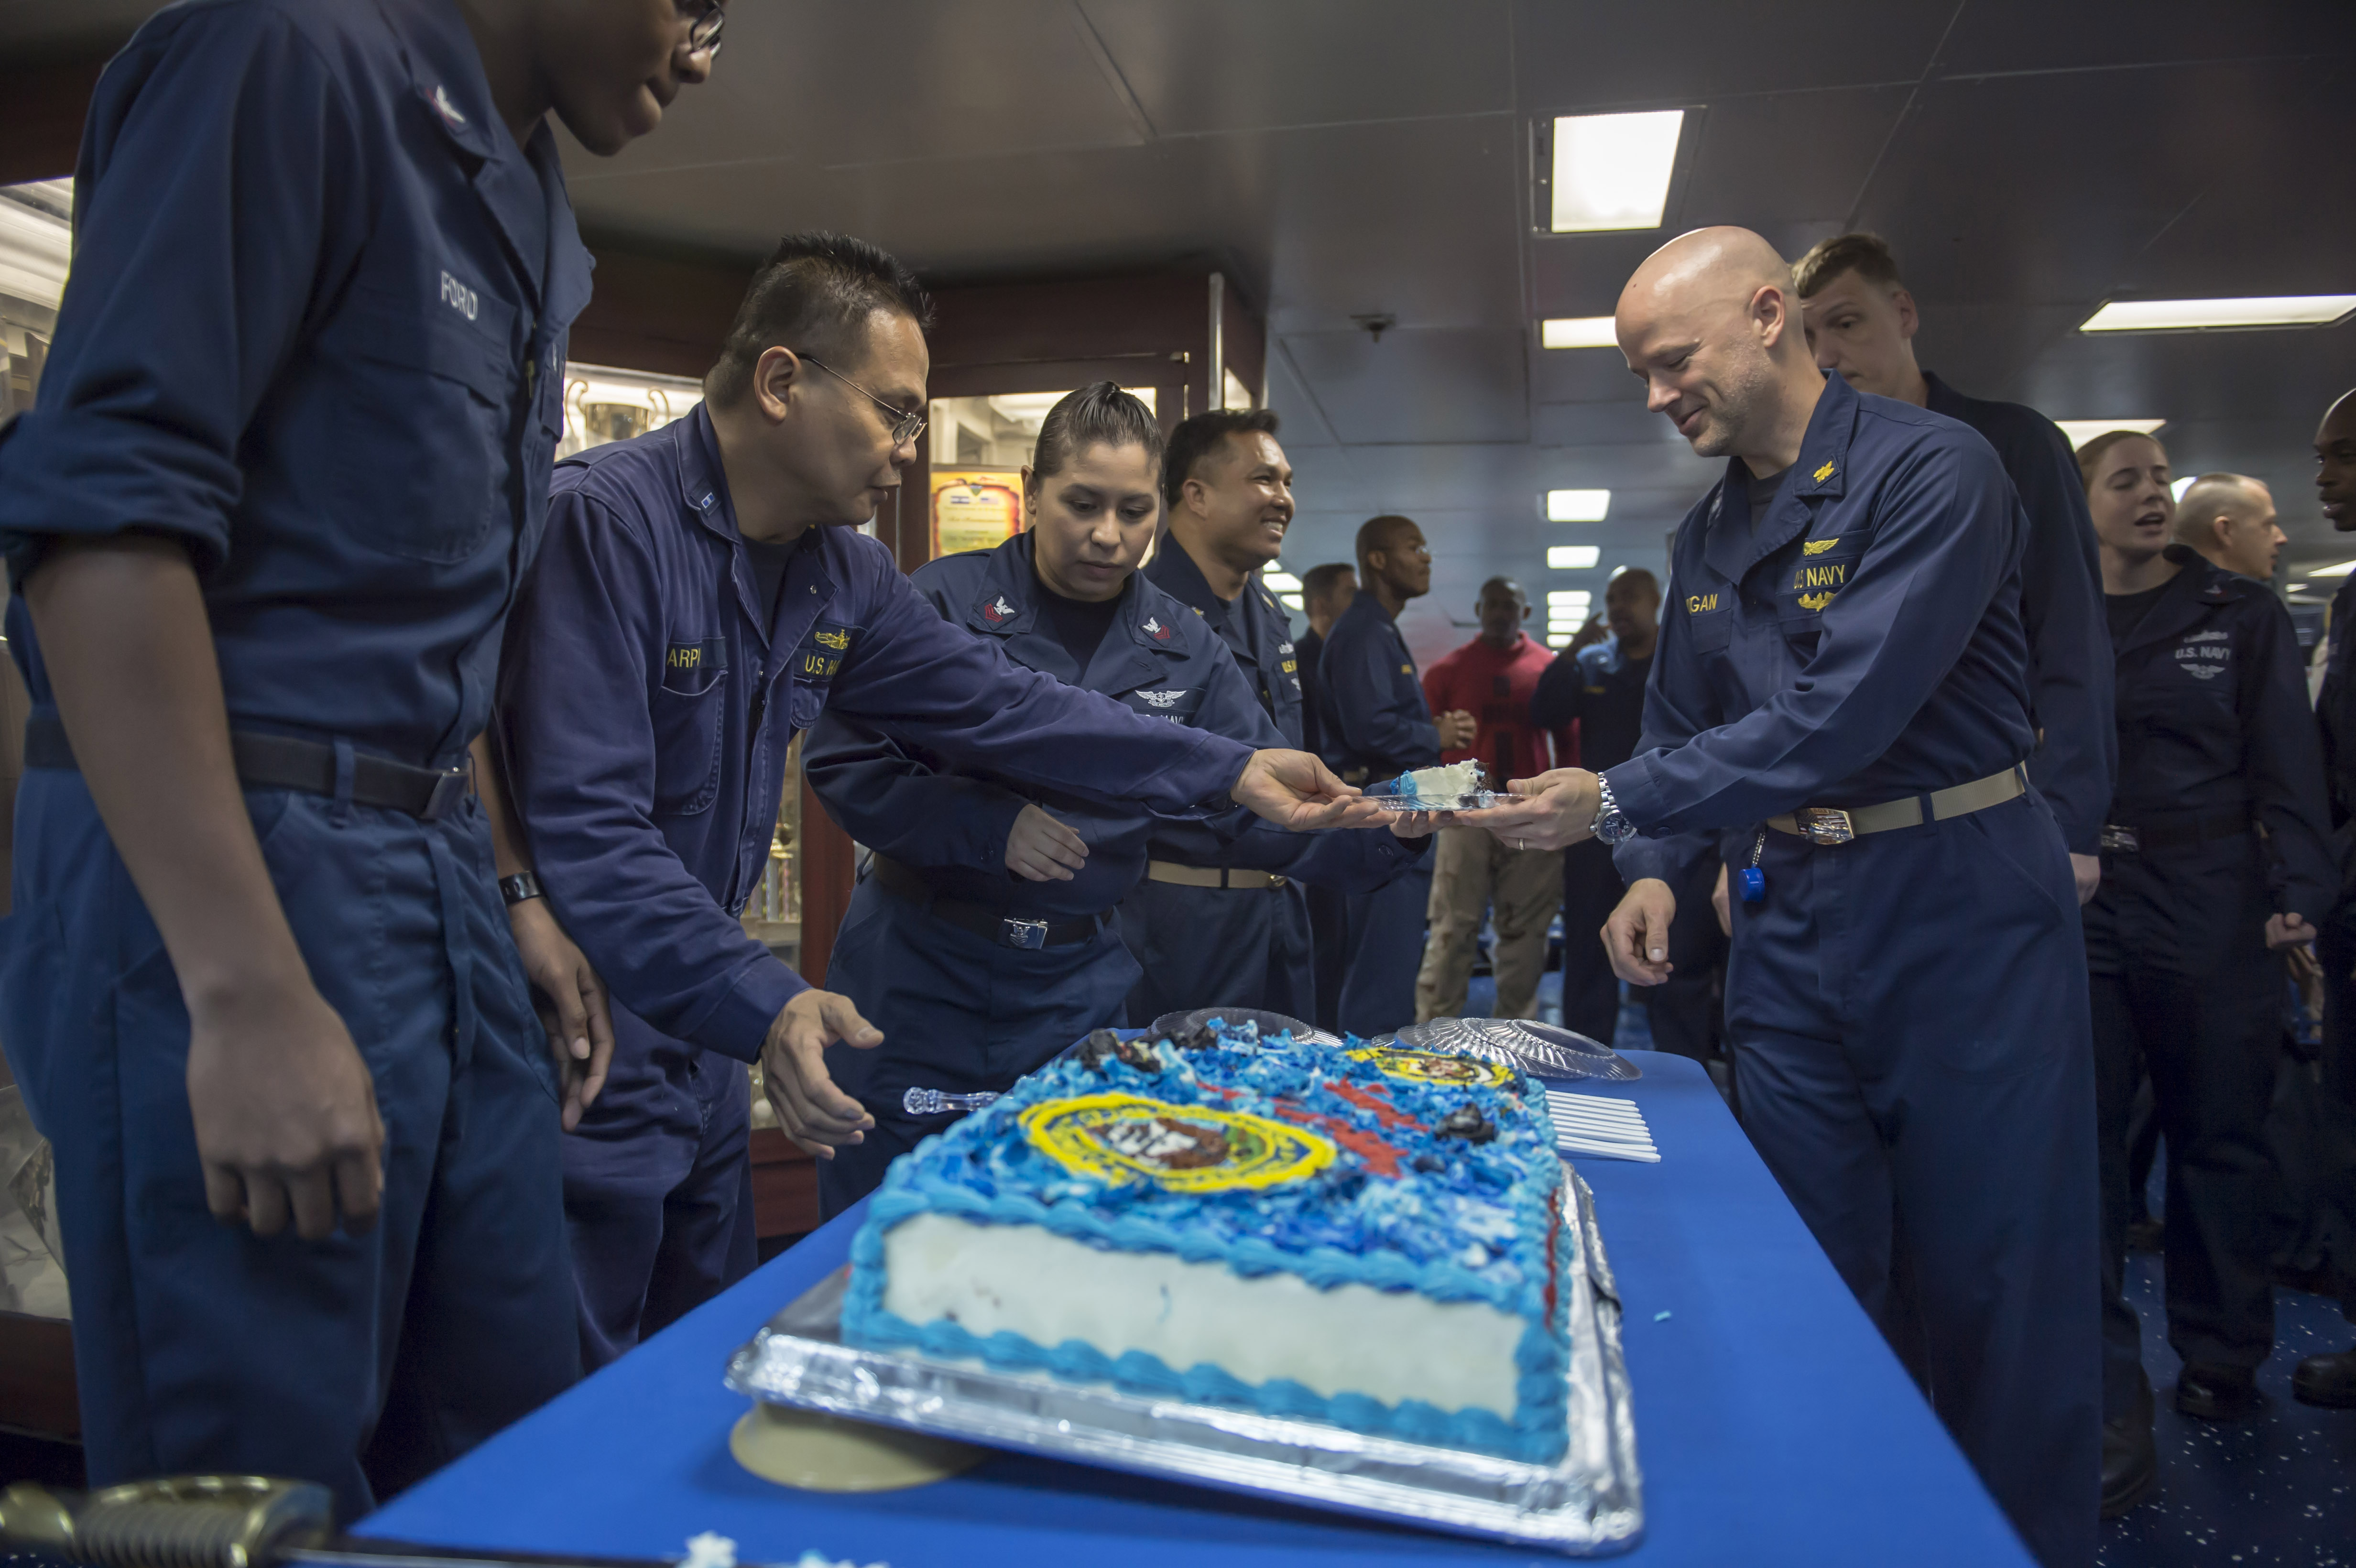 CWO Edwin Carpio hands out a piece of cake during a Navy birthday cake-cutting ceremony aboard the amphibious assault ship USS Boxer (LHD-4) in 2013.